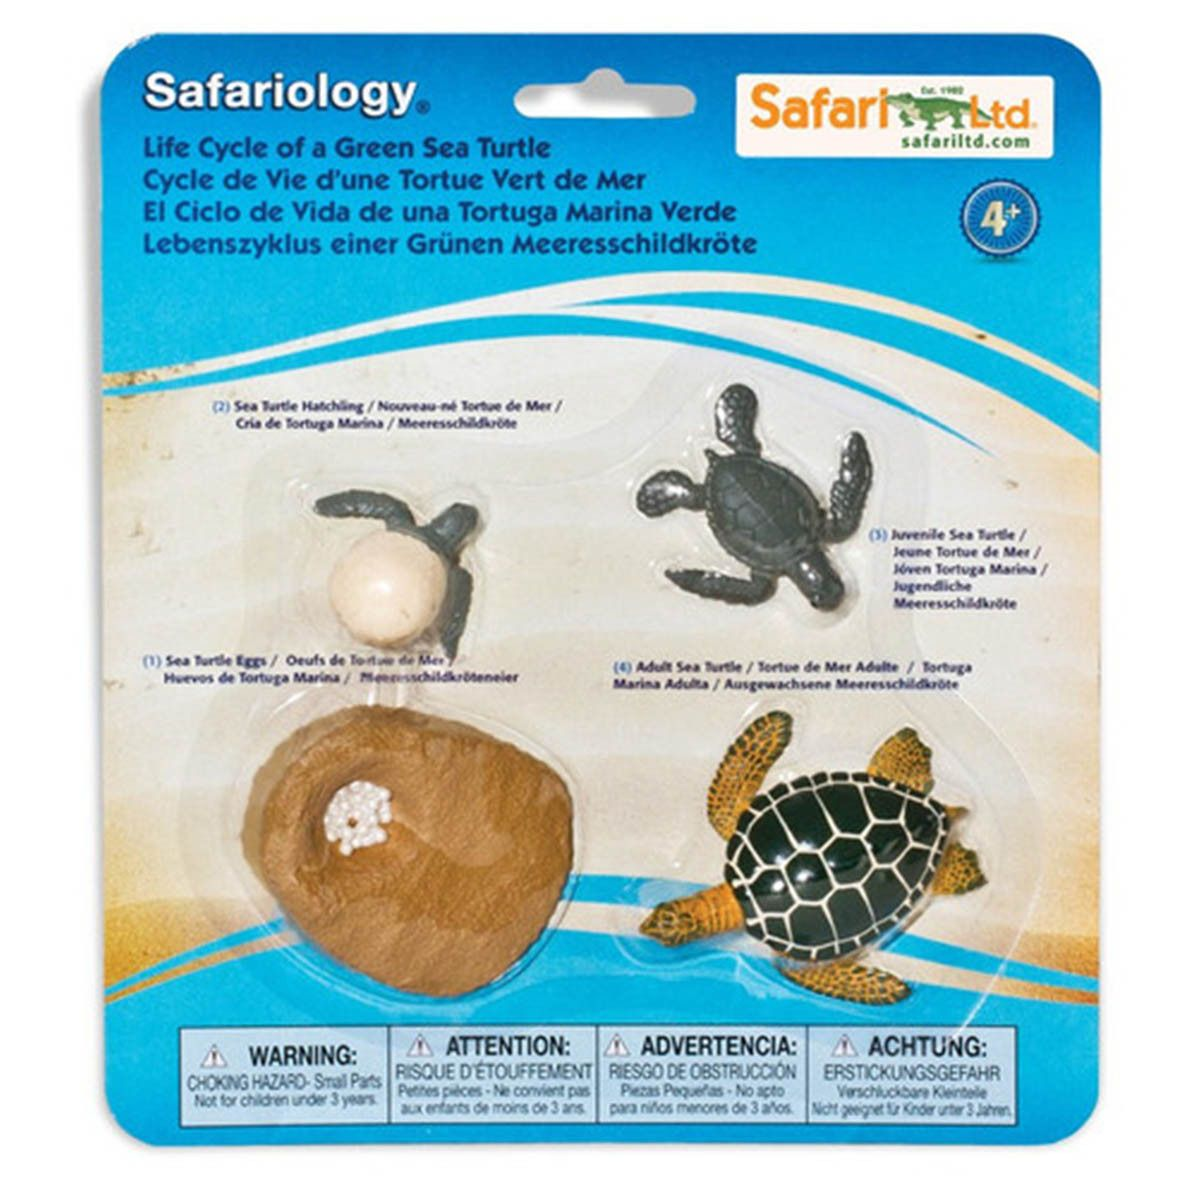 This Is A Life Cycle Of A Green Sea Turtle Animal Figures Set Produced By Safari These Life